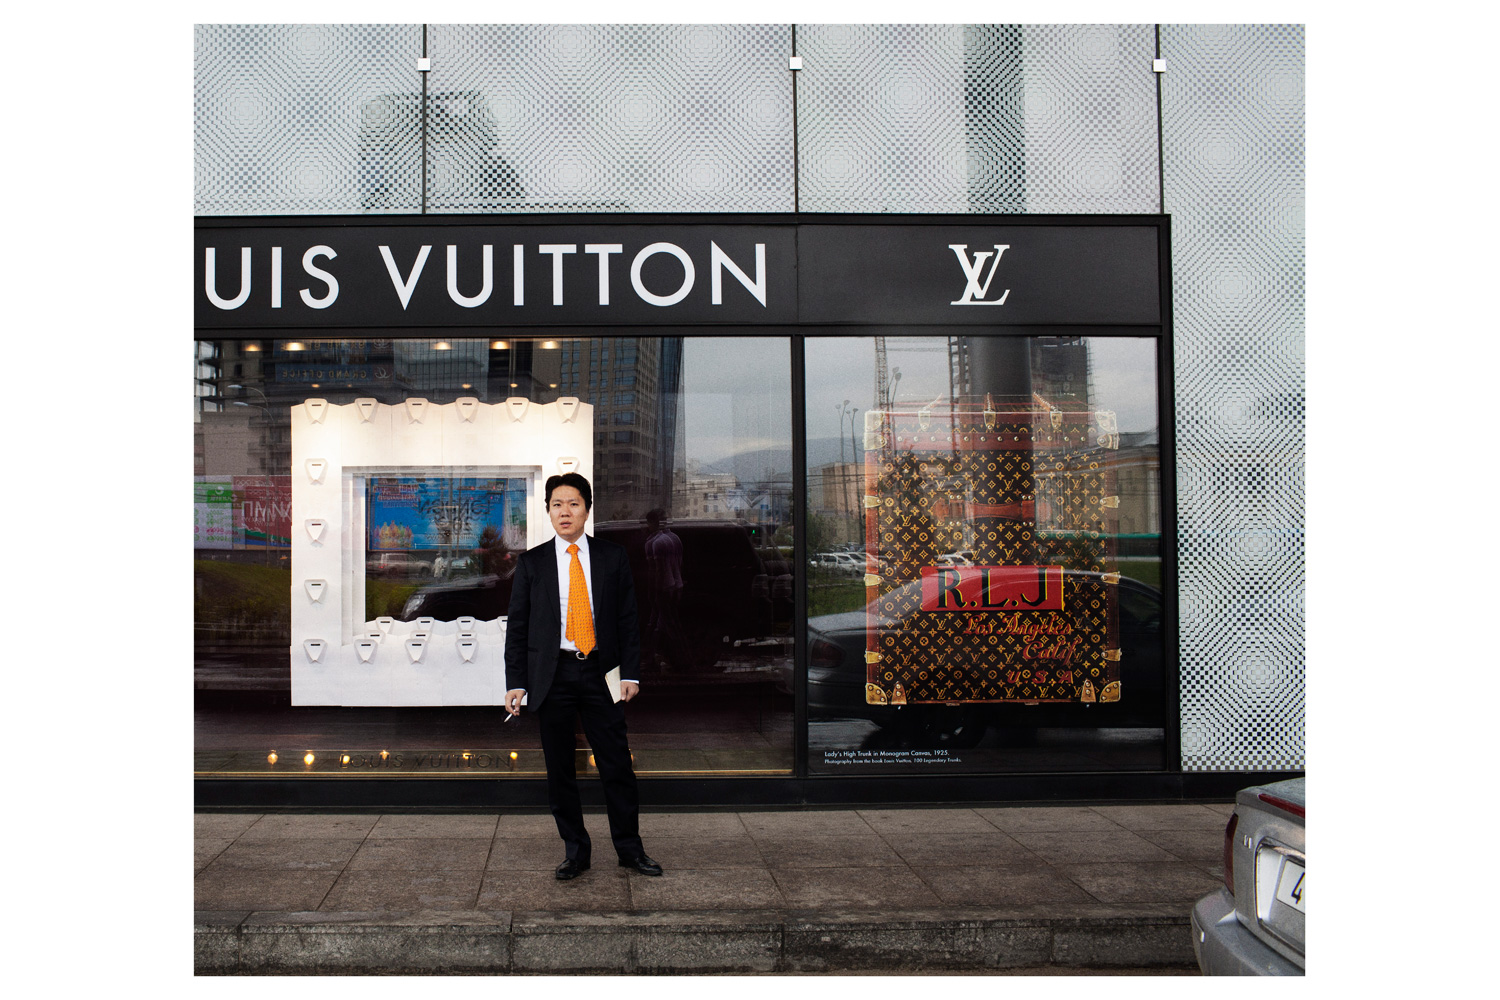 Luxury stores have appeared in Ulan Bator, yet one-third of the country remains impoverished.